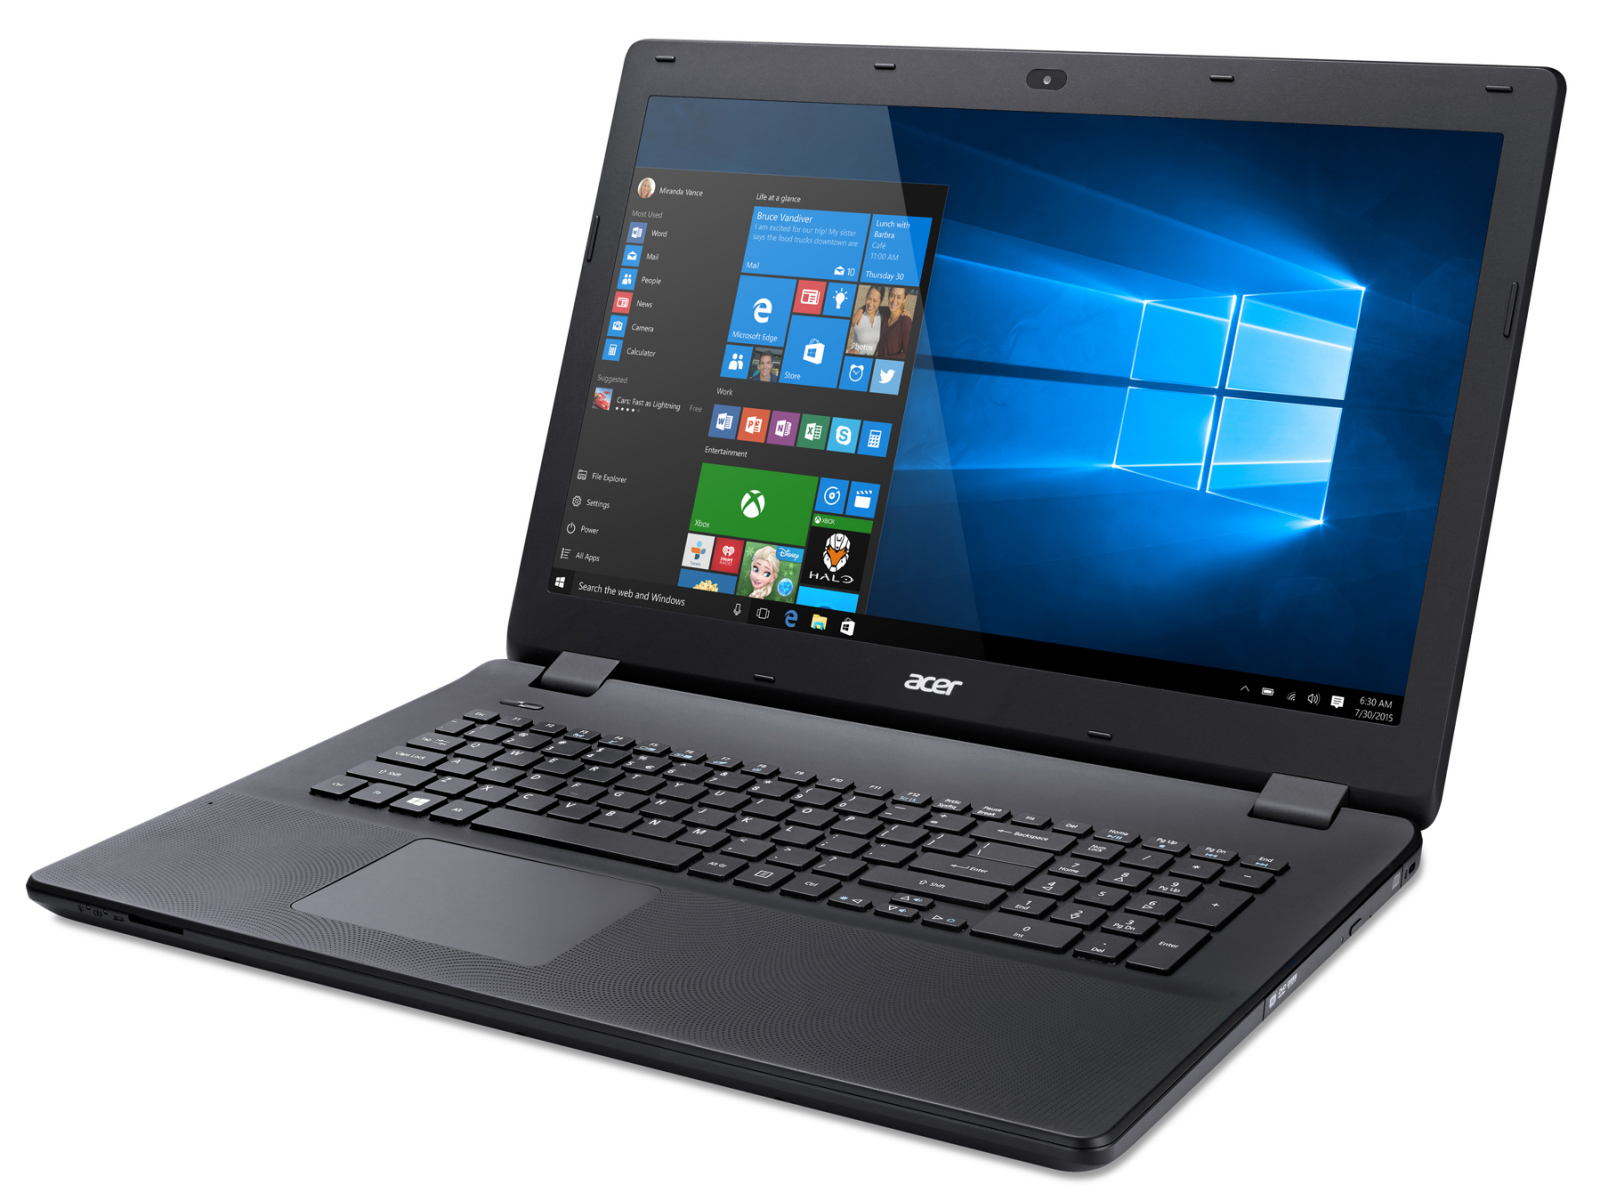 ACER ASPIRE ES1-731G INTEL USB 3.0 64BIT